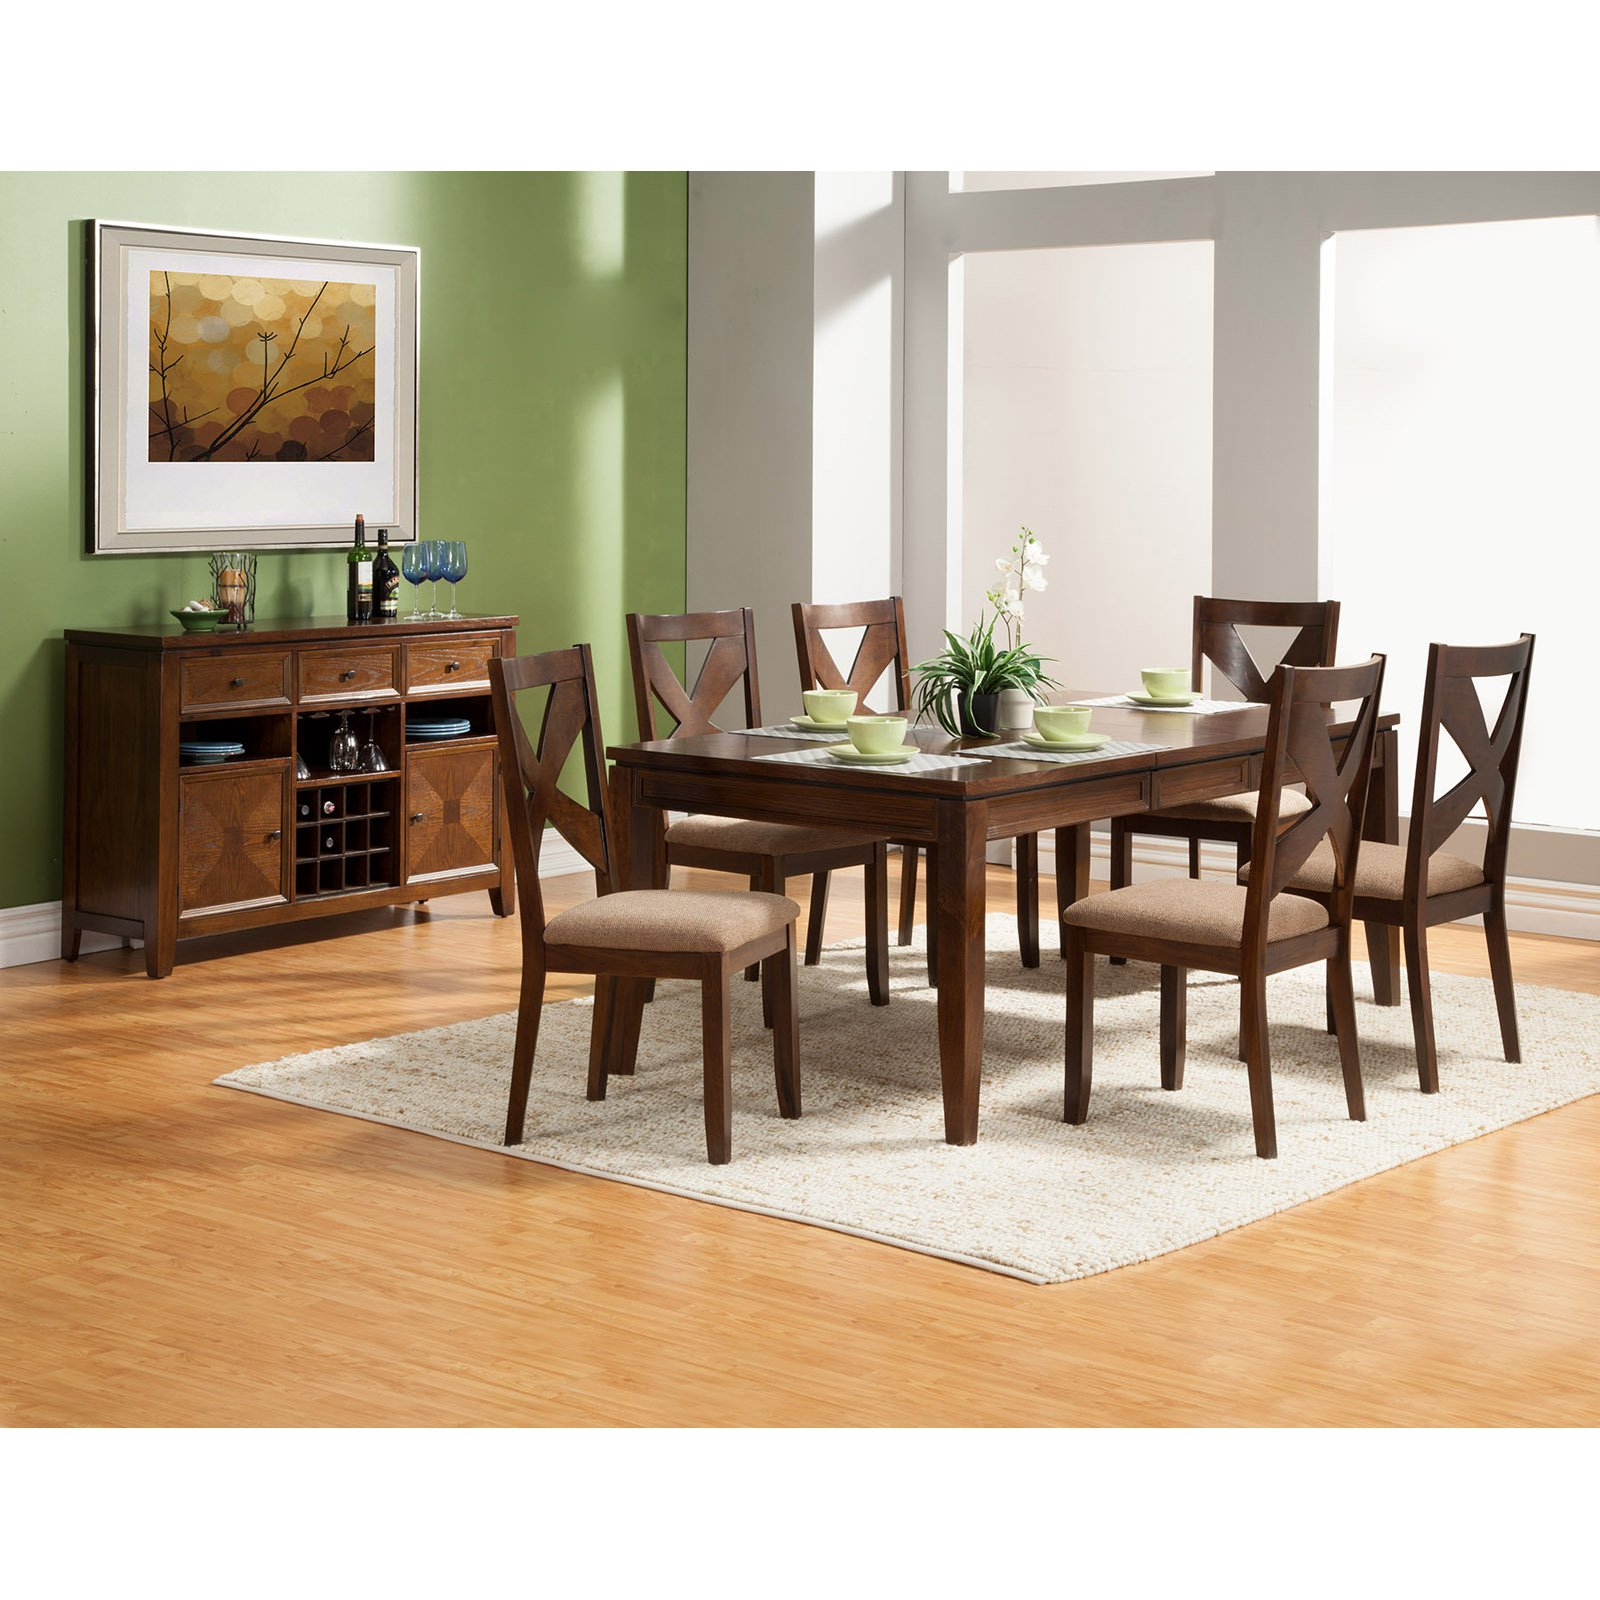 Alpine Furniture Albany 7 Piece Dining Set with Optional Server